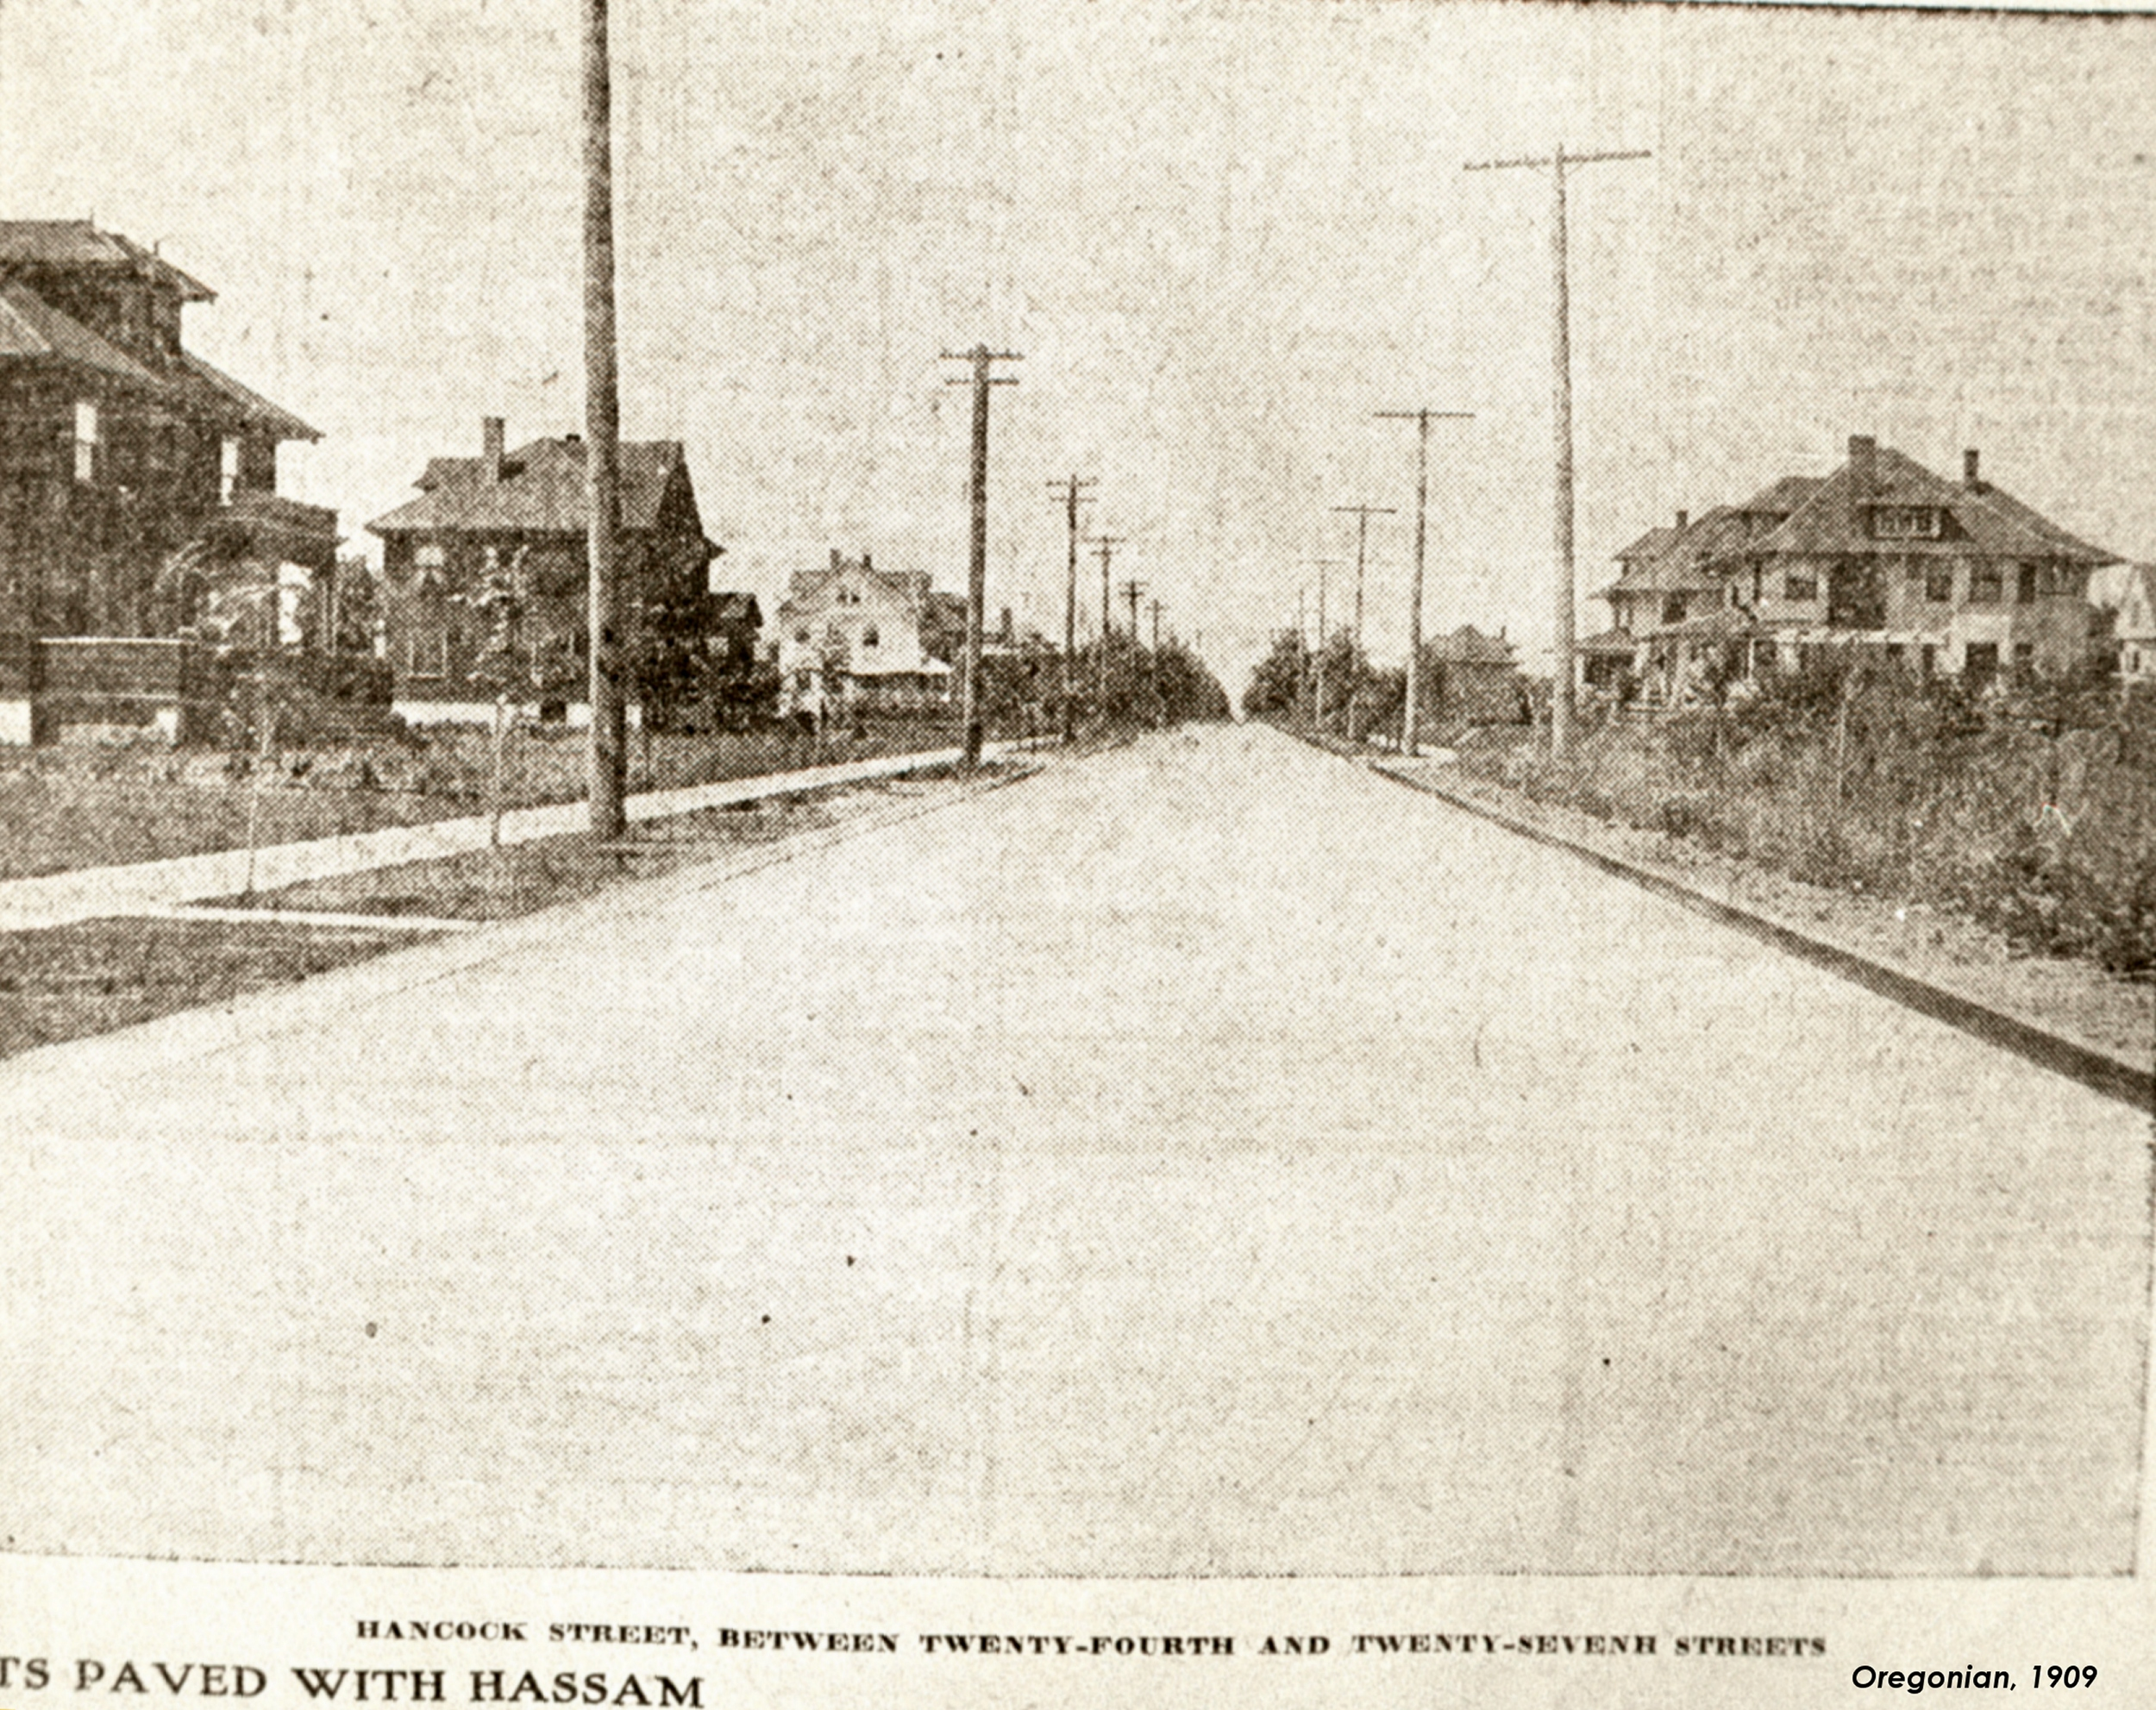 Hancock street/tHE oREGONIAN 1909